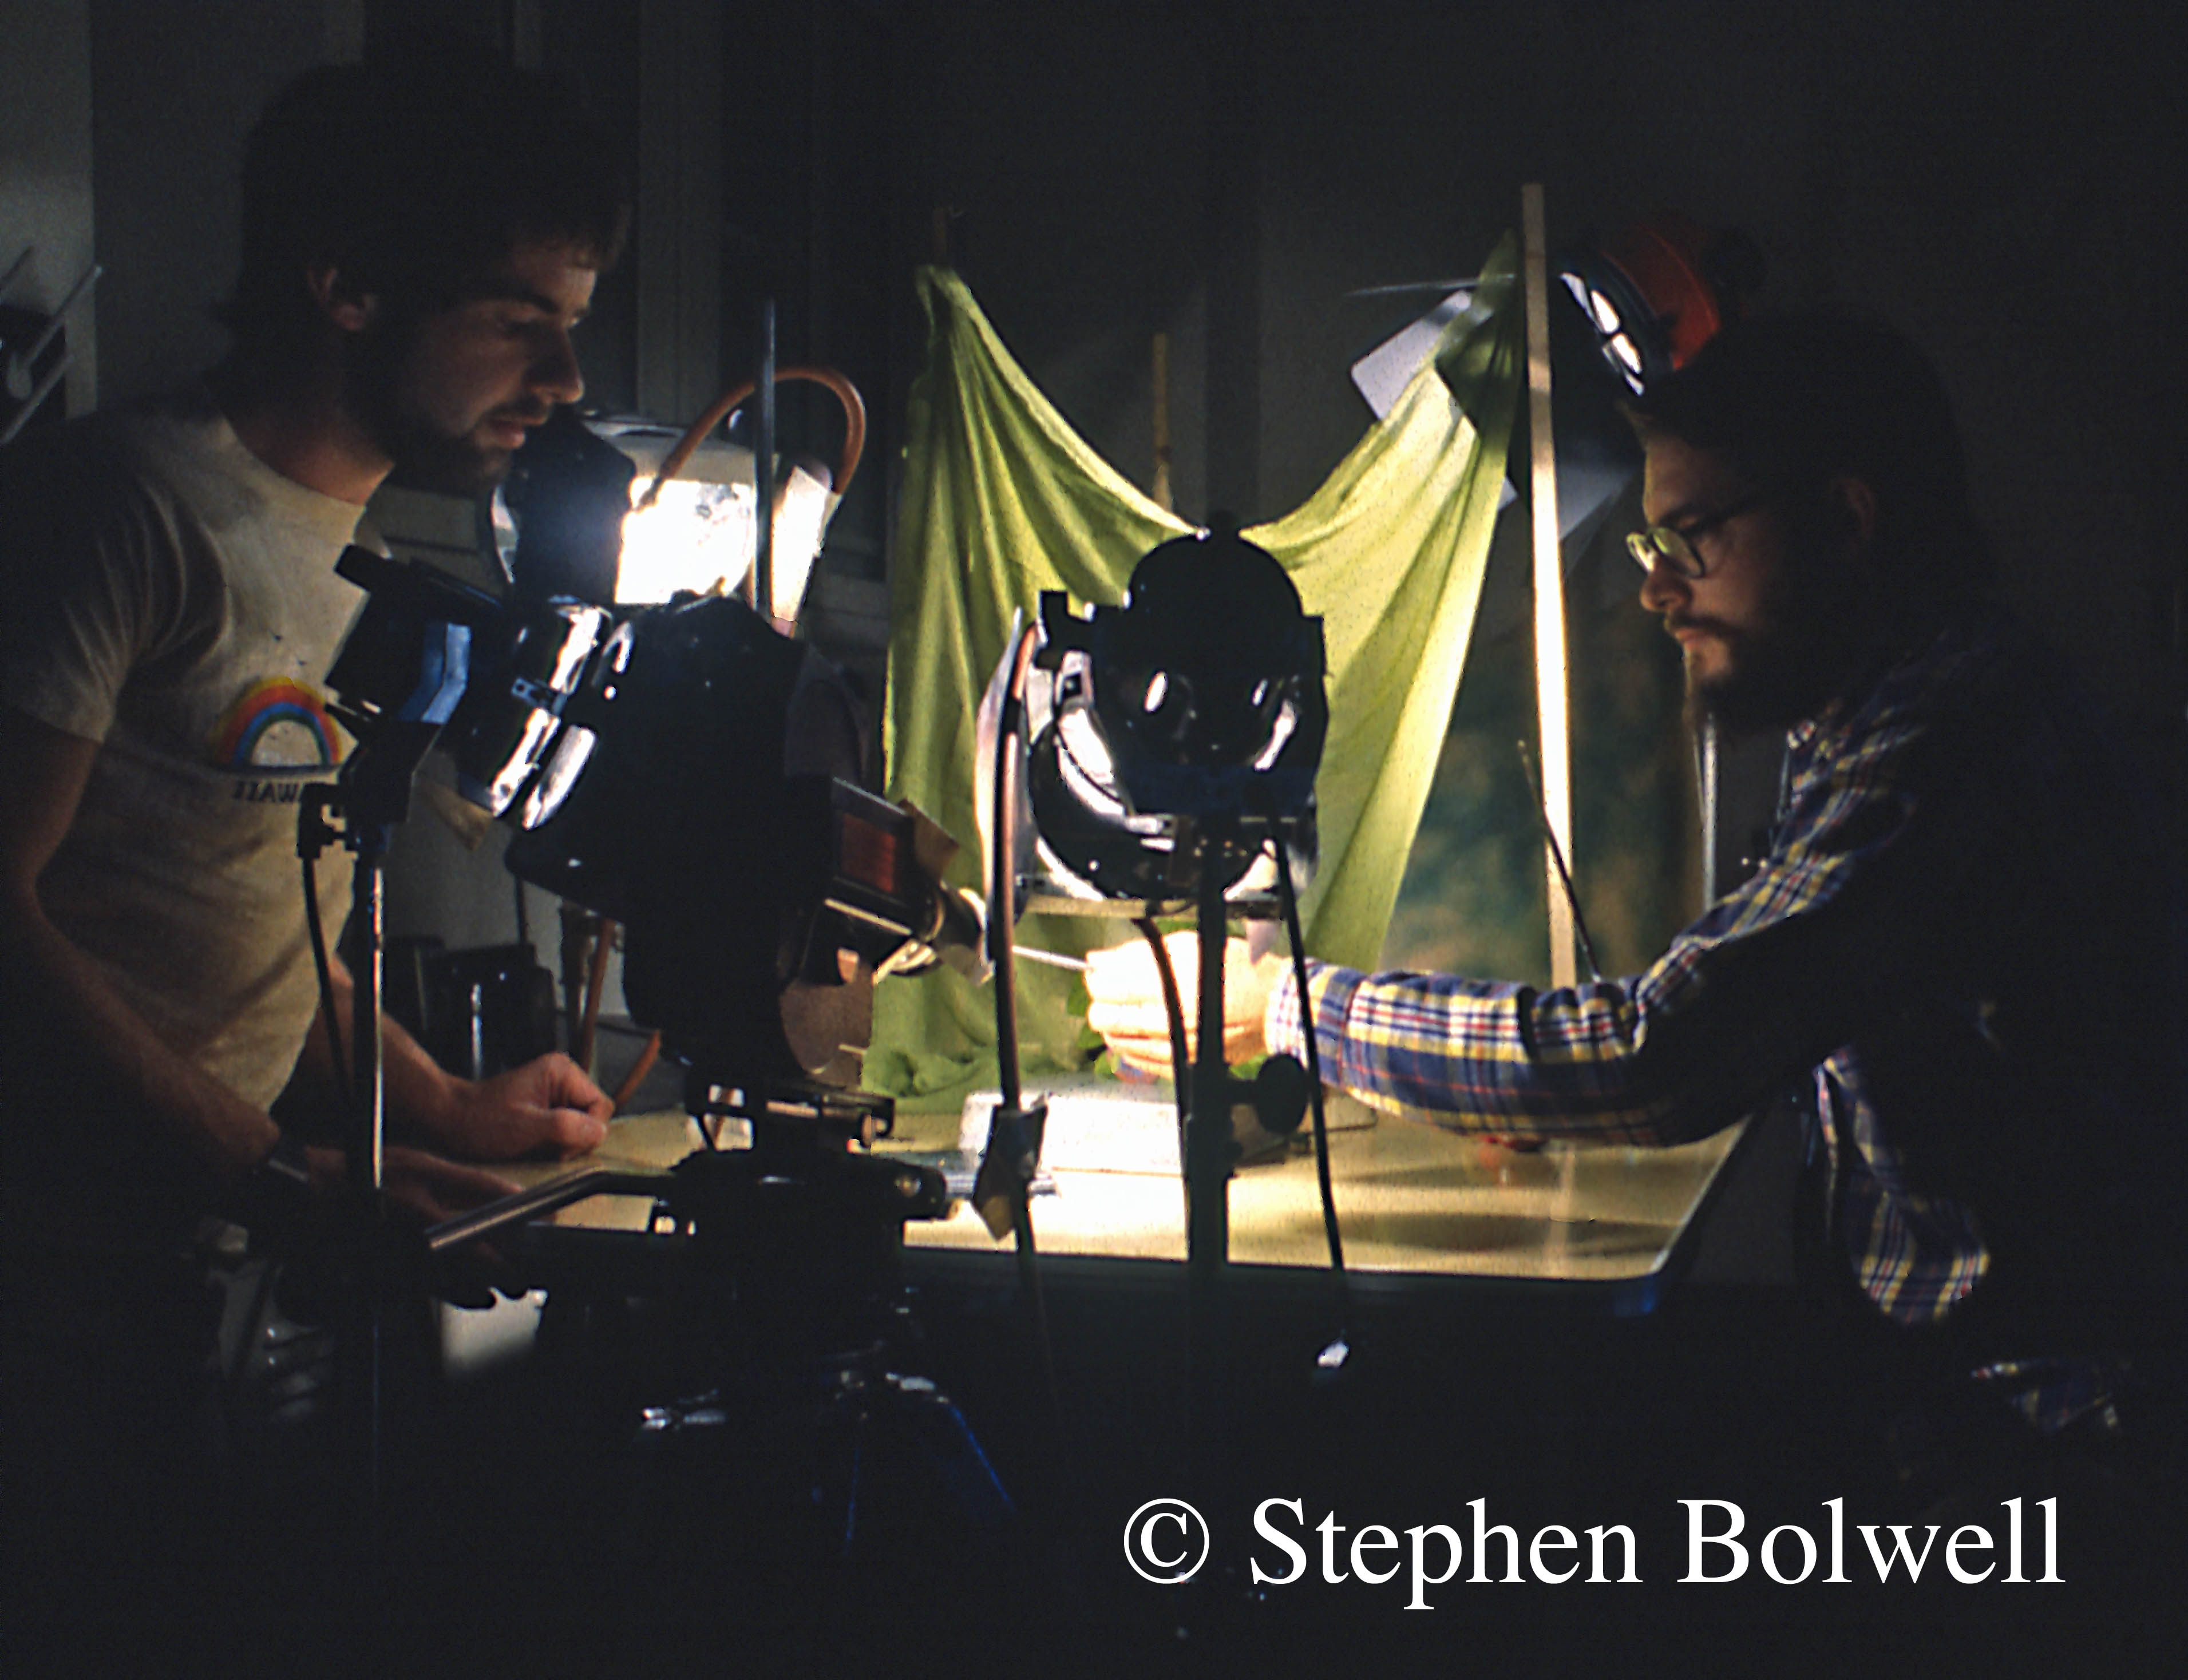 Filming in the lab (way back when) with Steve Montgomery (right). We are checking that the carnivorous caterpillars are happy under my water cooled lighting system - a year later I had the benefit of fibre optic lights.